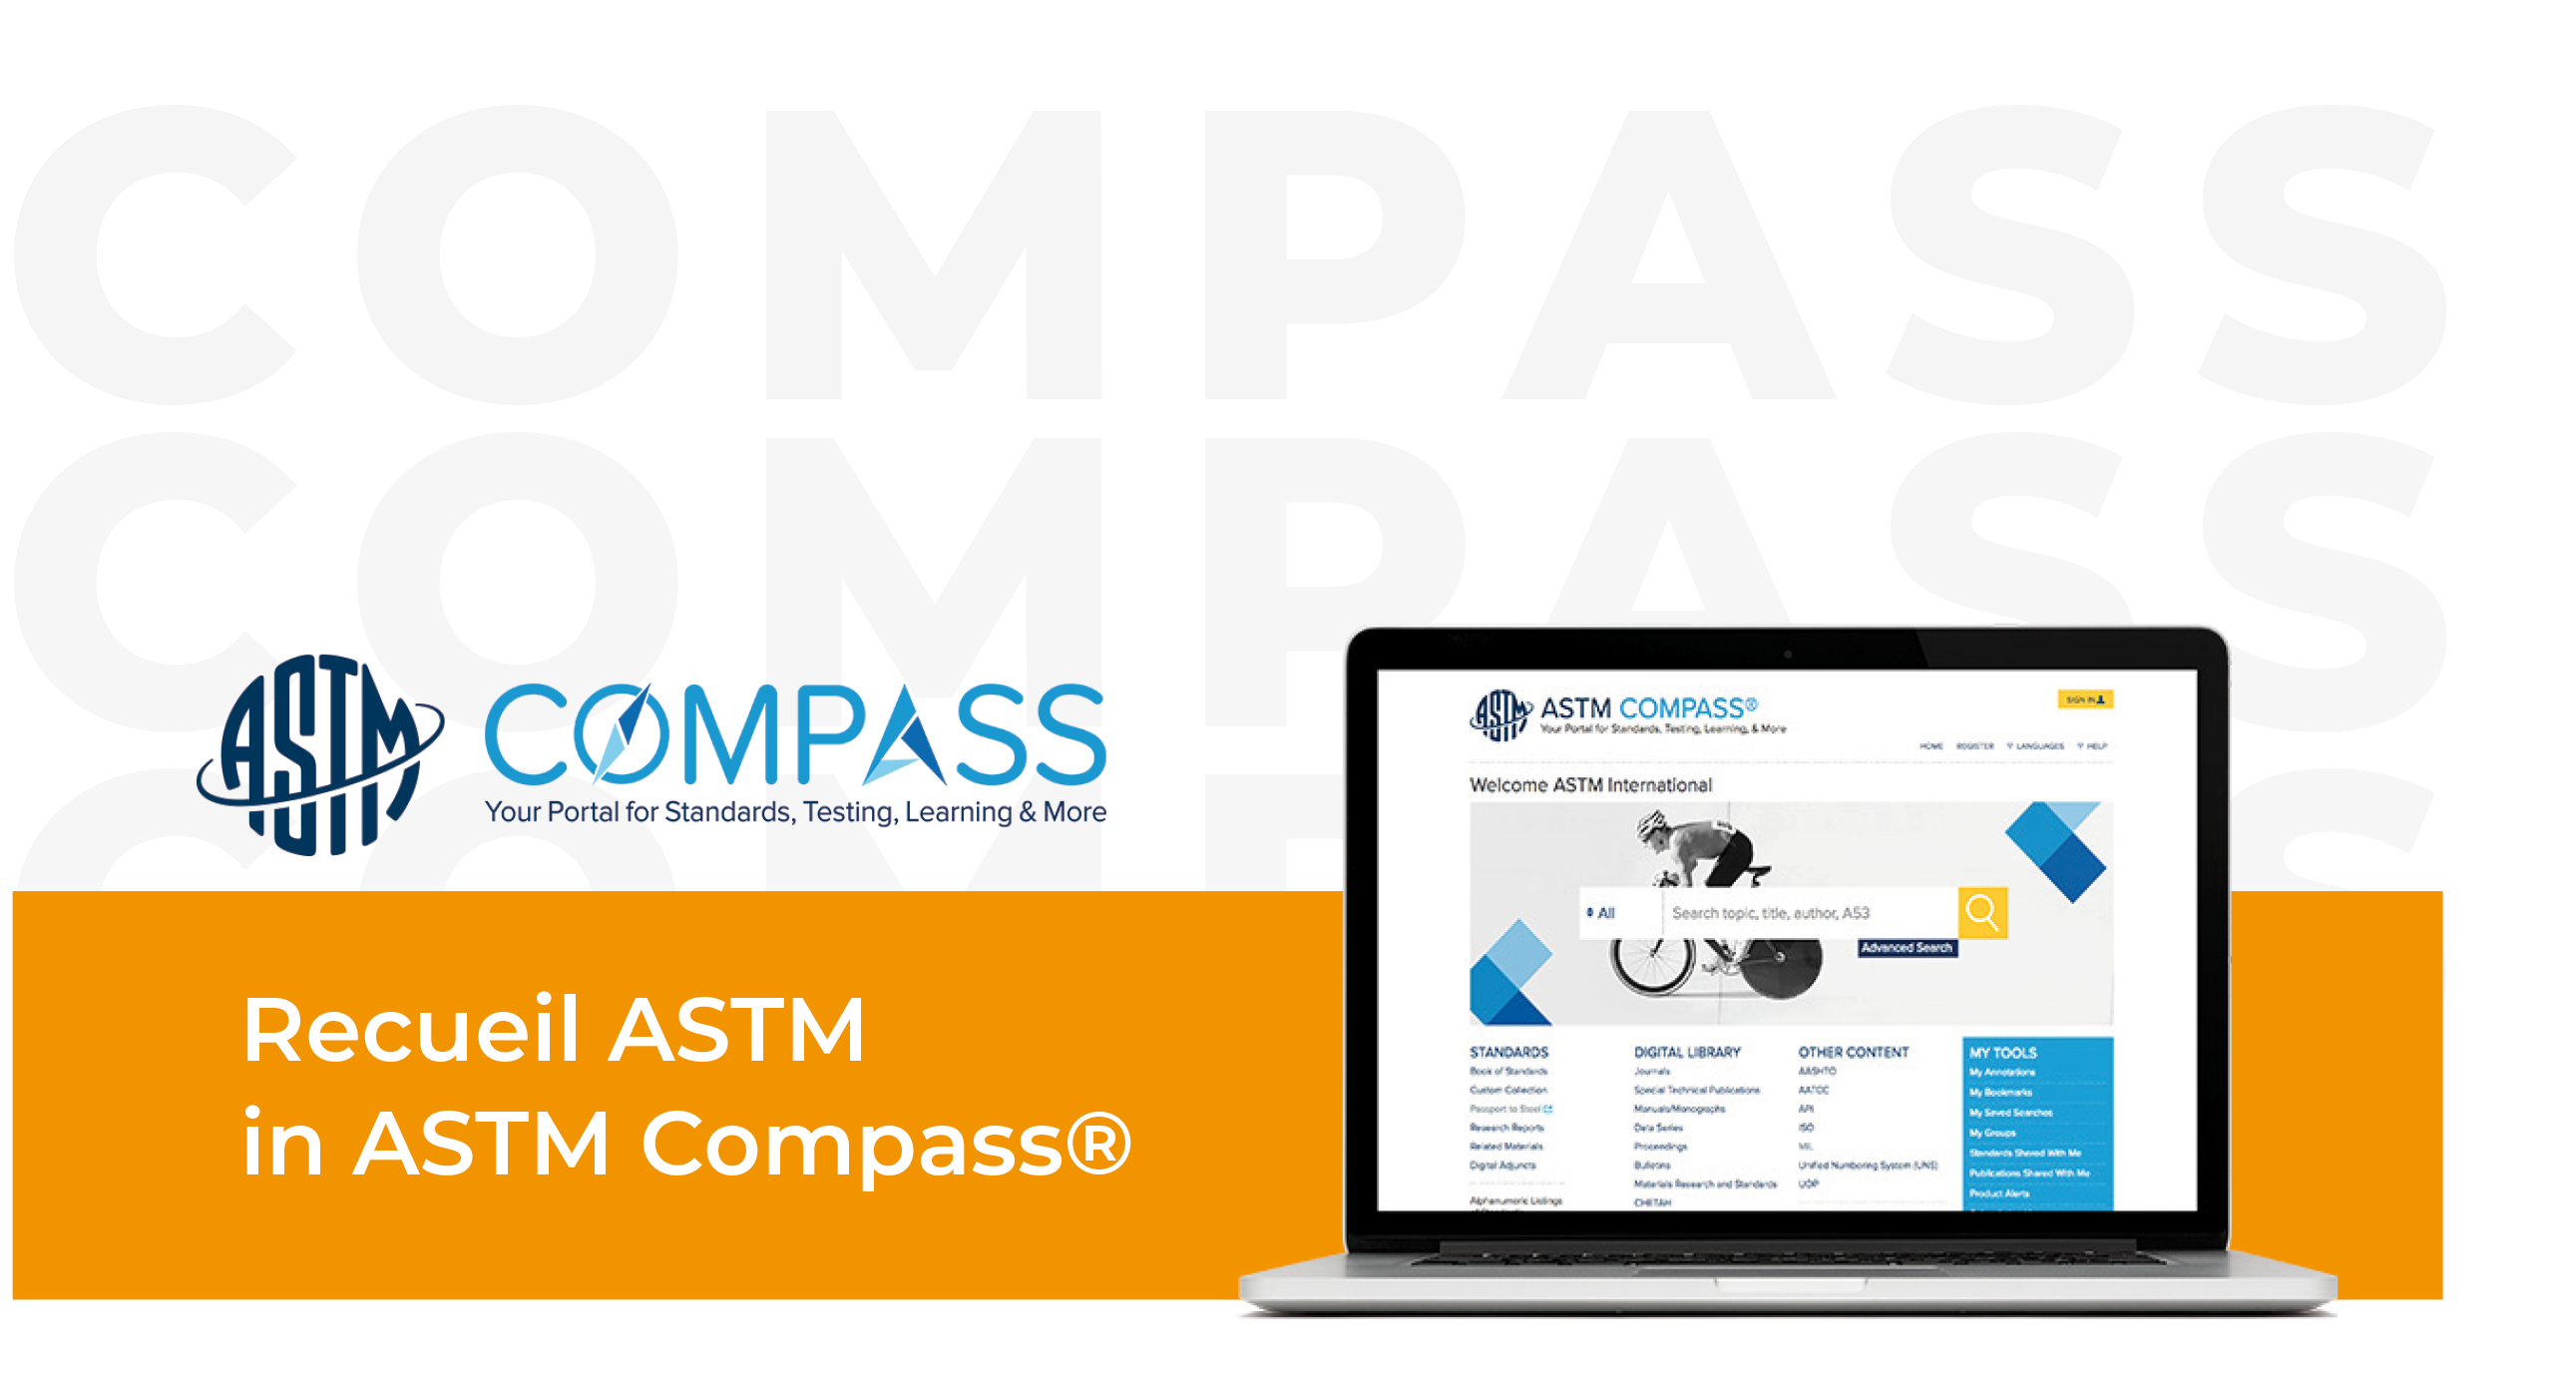 ASTM Compass portal for standards, testing, learning and more